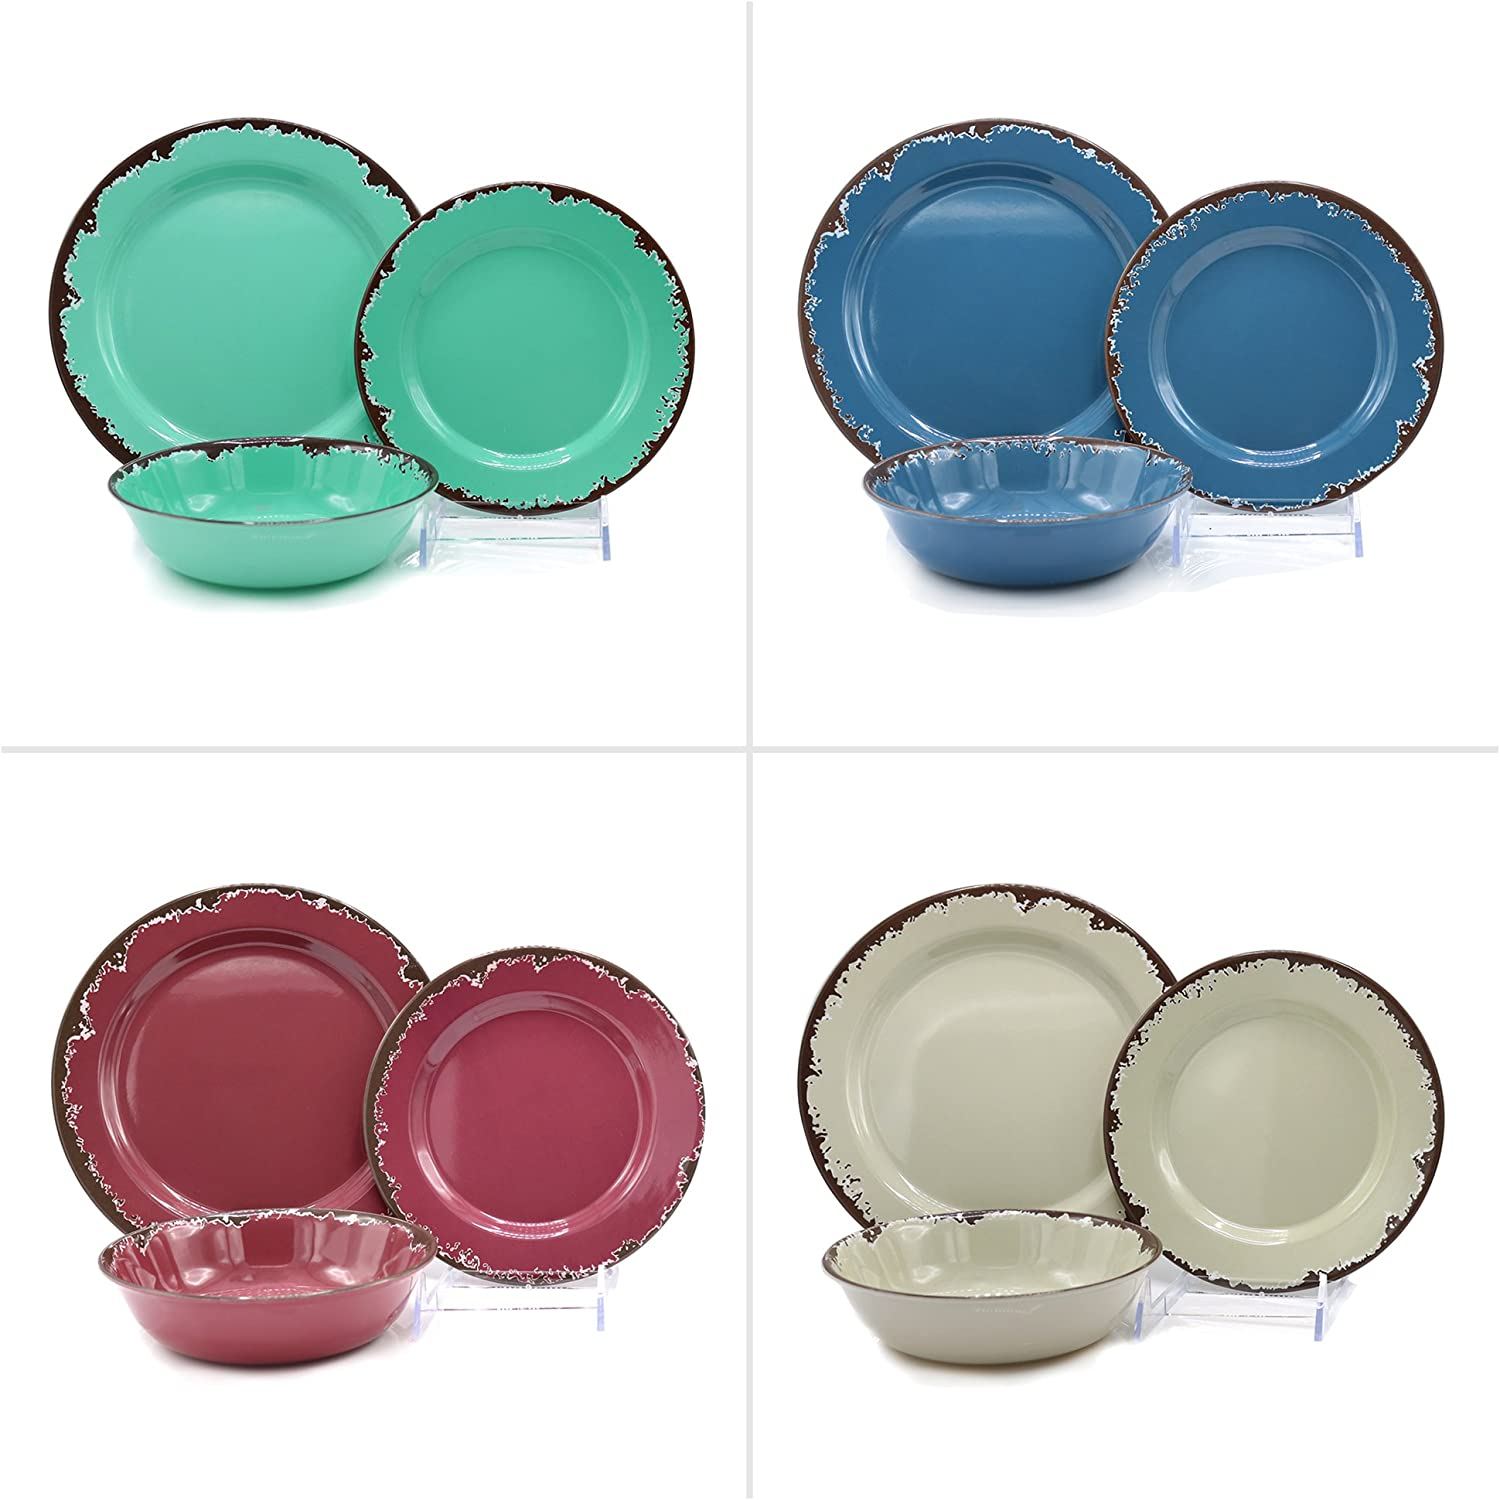 Rustic Melamine Dinnerware 12 Pc Set Vintage-Inspired Way To Enjoy Casual Meals With A Charming Look By CTD Store